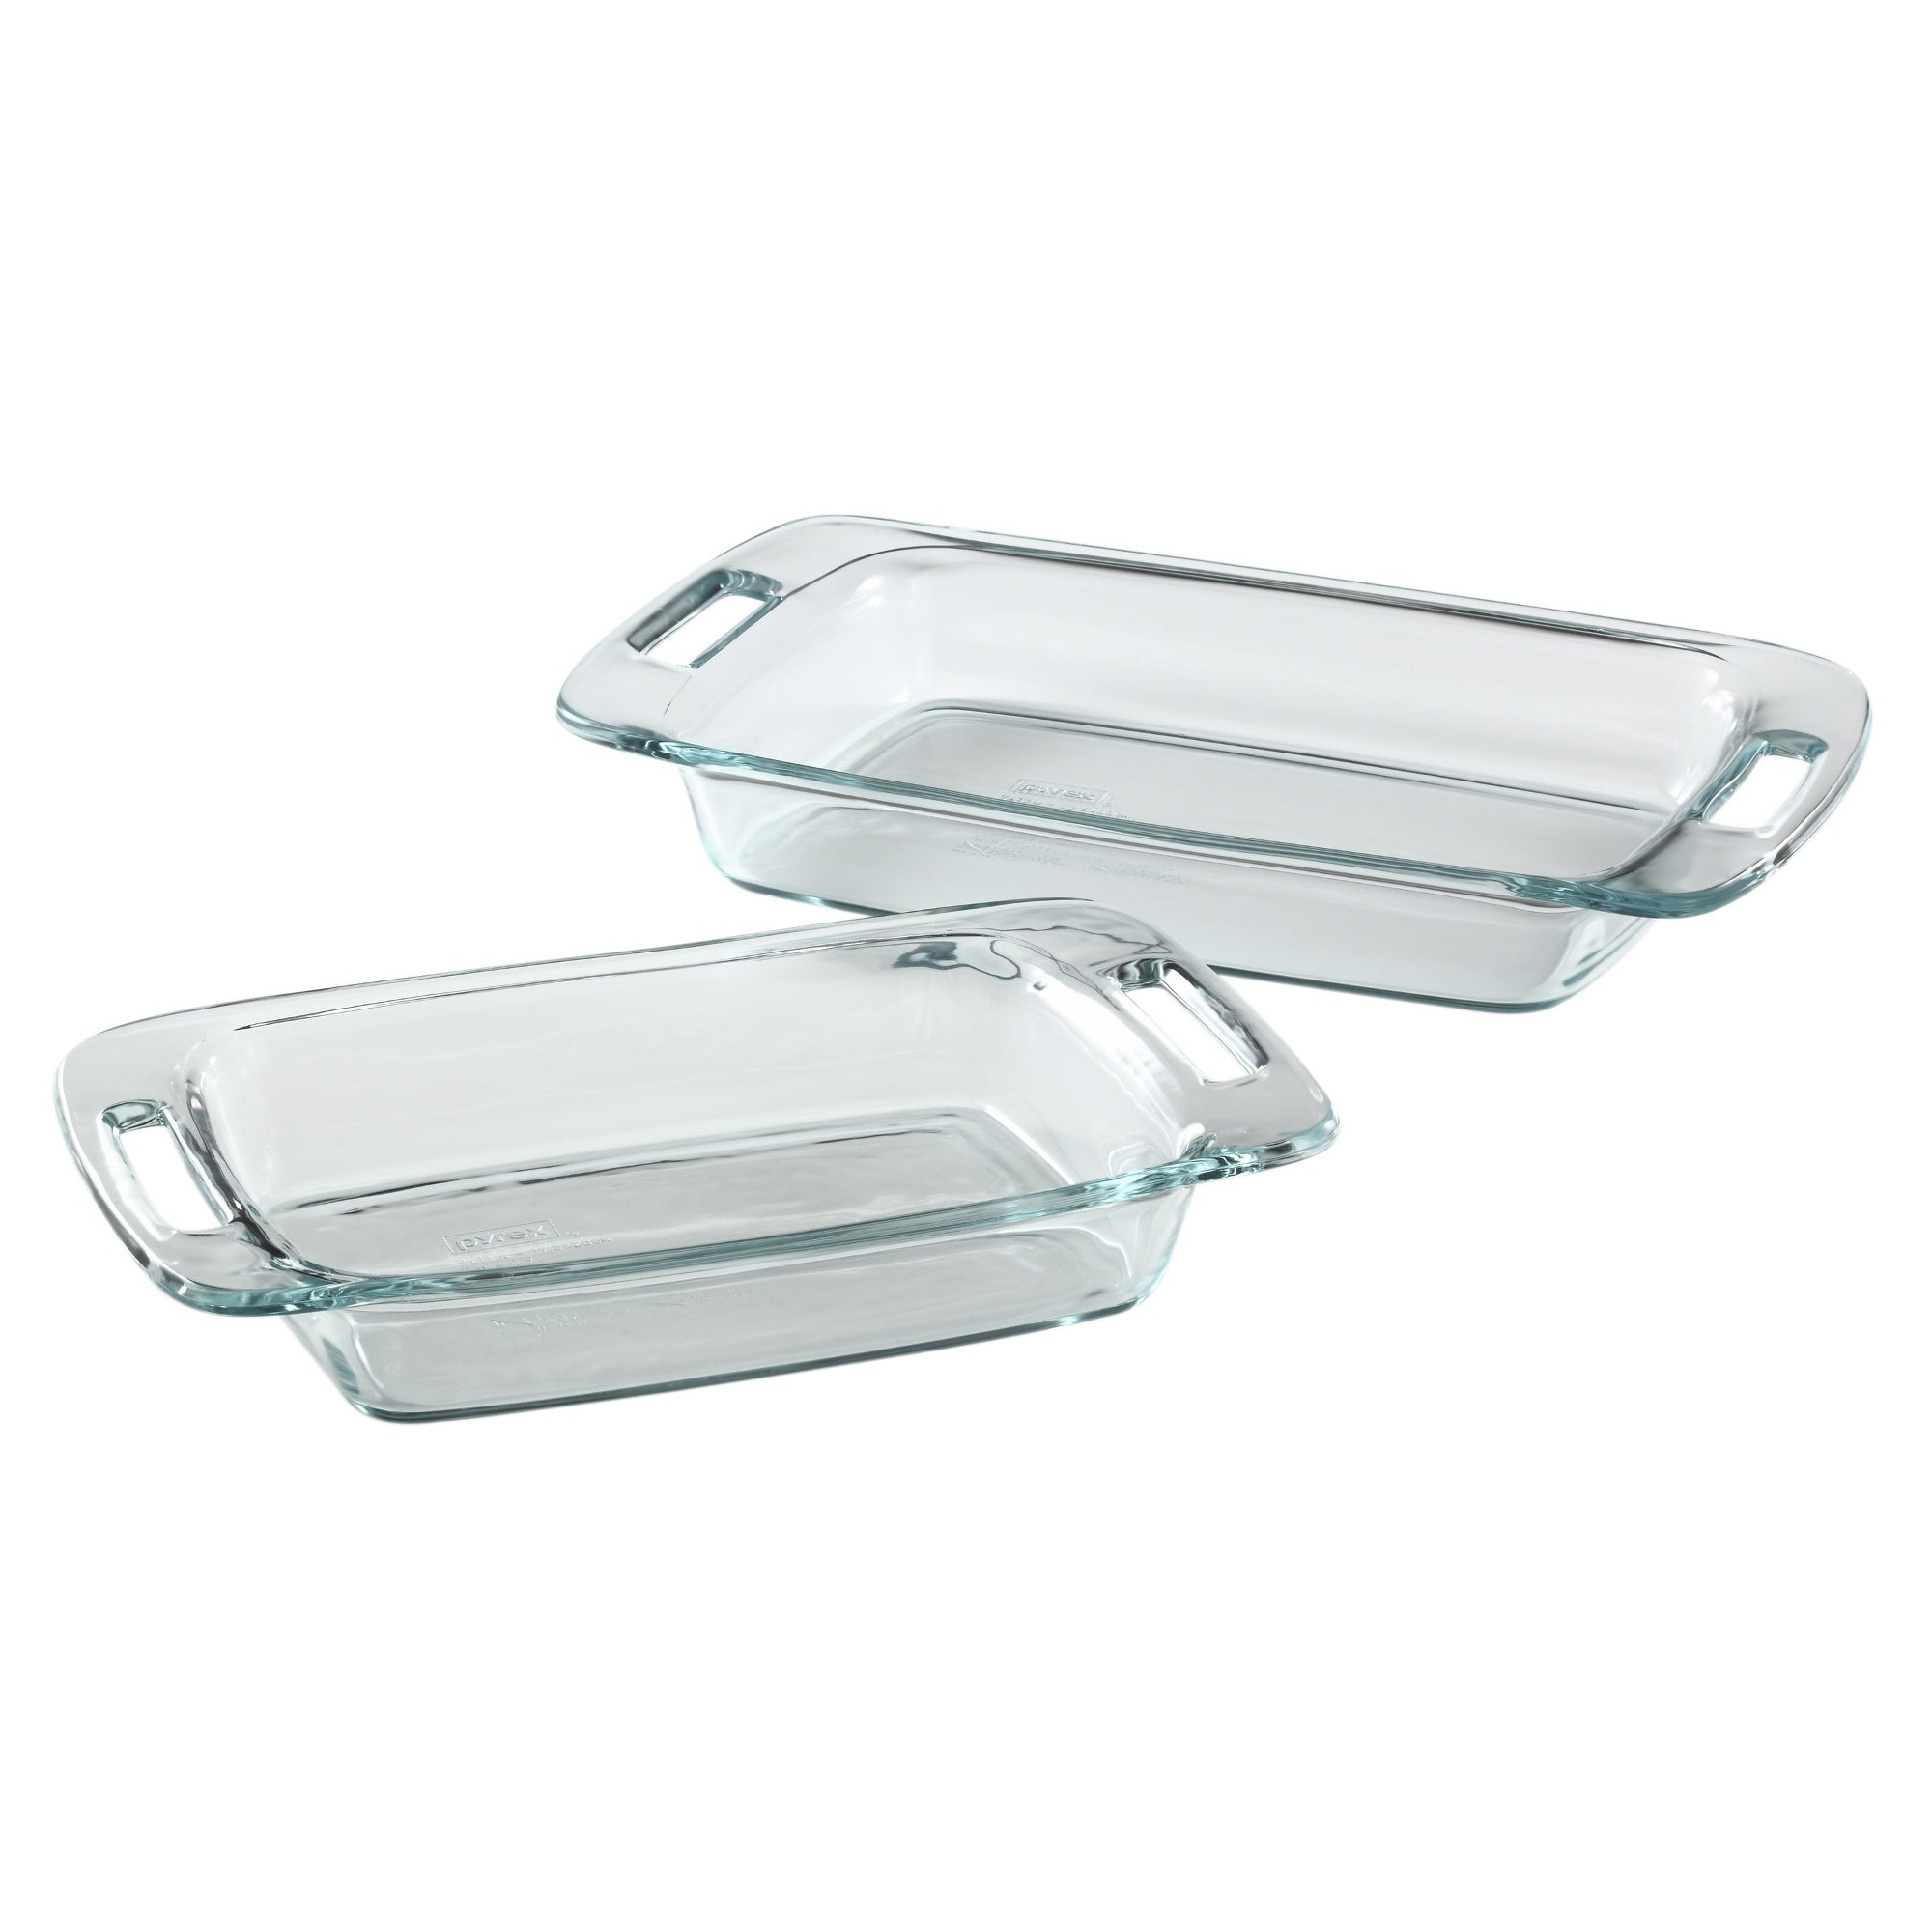 Pyrex GBW Easy Grab 1.9L & 2.85L Oblong Baking Dish-1085807